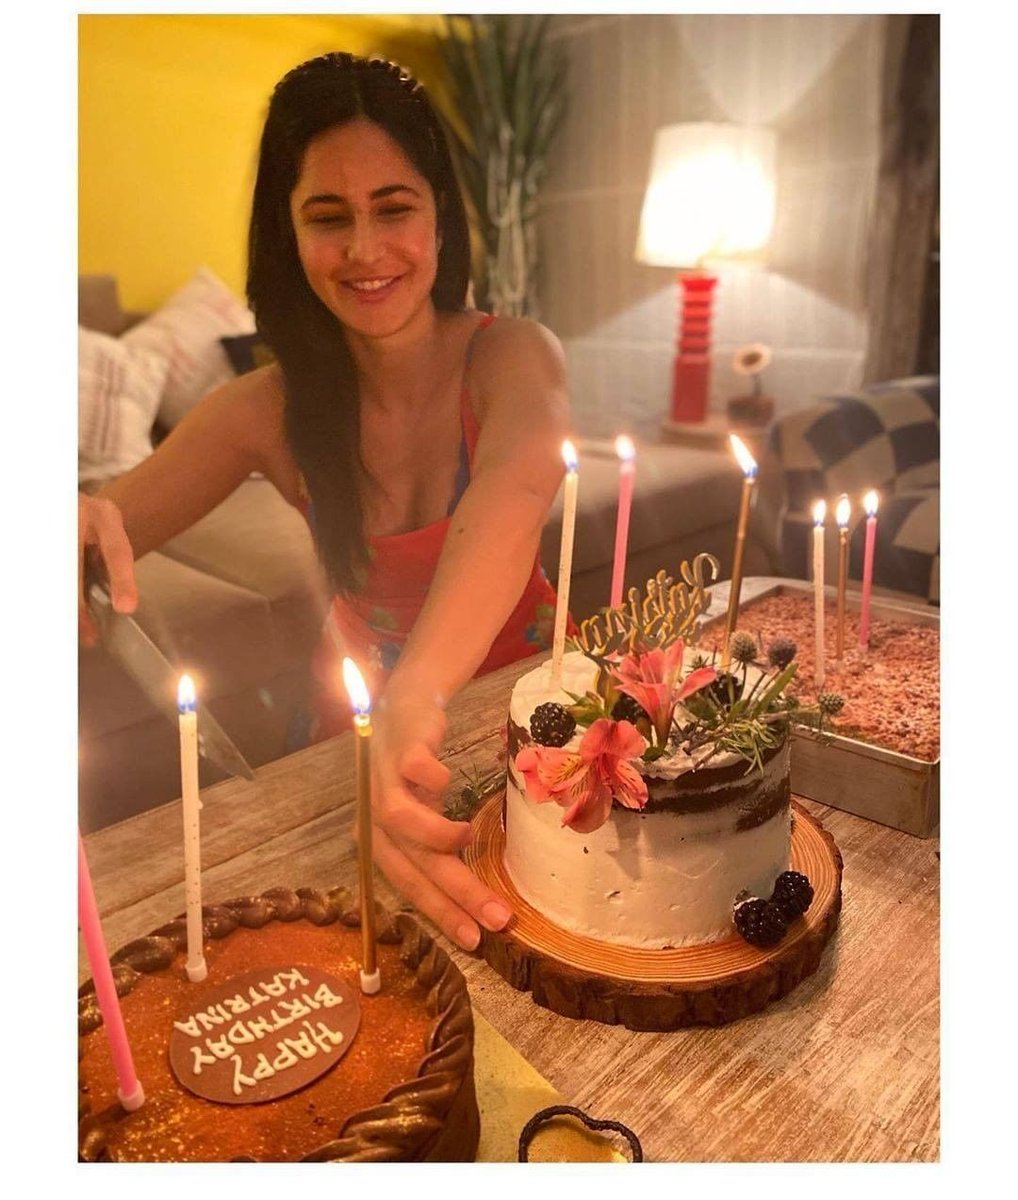 Divas aren't made, they're born! Here's a diva I know who's a total #BossBabe and who knows how to kill it at everything that she does! Happiest birthday @katrinakaif Wishing you love, laughter and all the best things in life! Big hug & love!#HappyBirthdayKatrinaKaif pic.twitter.com/0lYO2bguhT